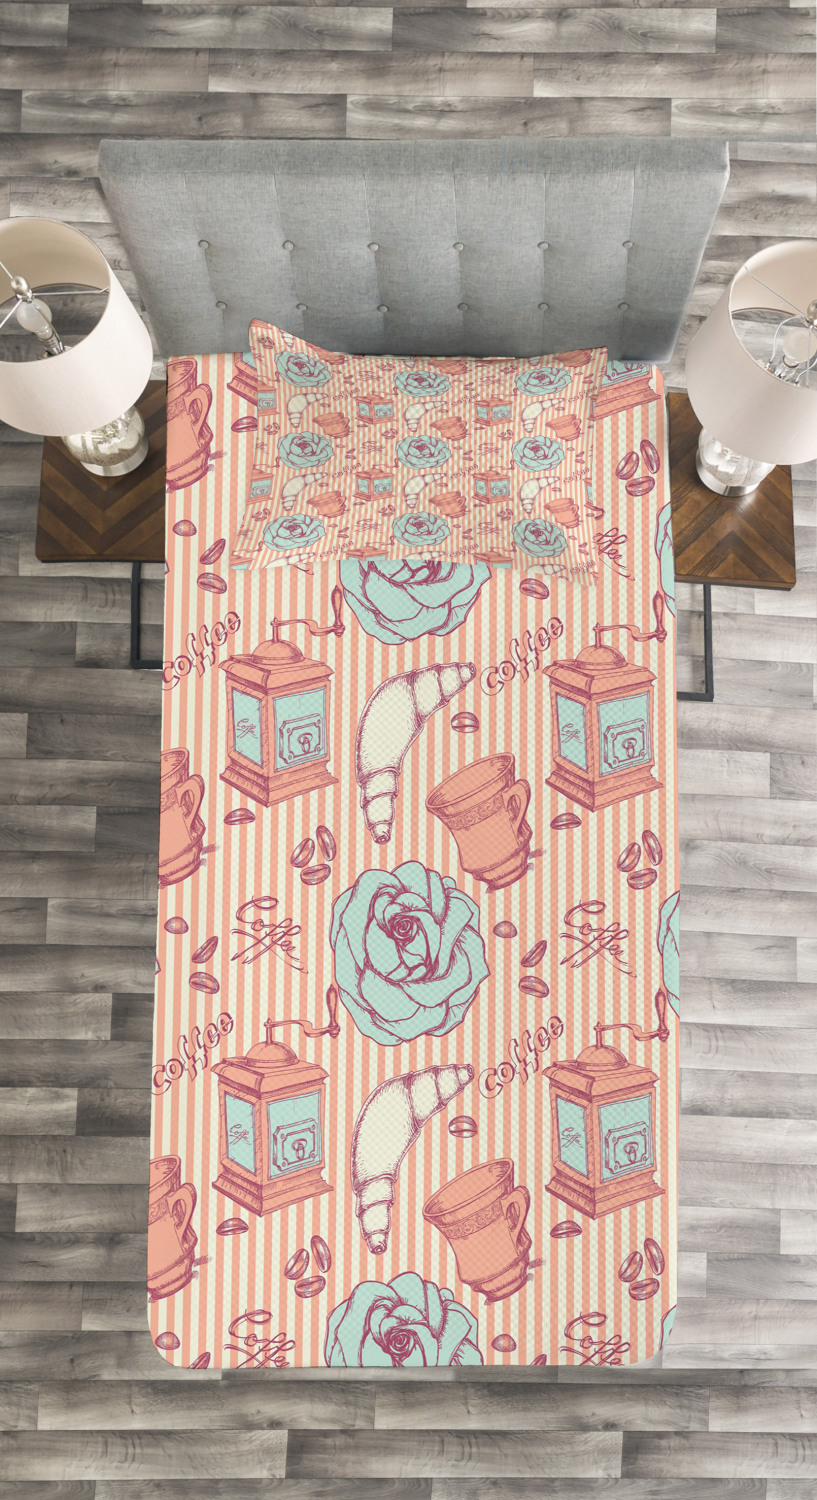 Shabby-Chic-Quilted-Bedspread-amp-Pillow-Shams-Set-Roses-Coffee-House-Print thumbnail 4